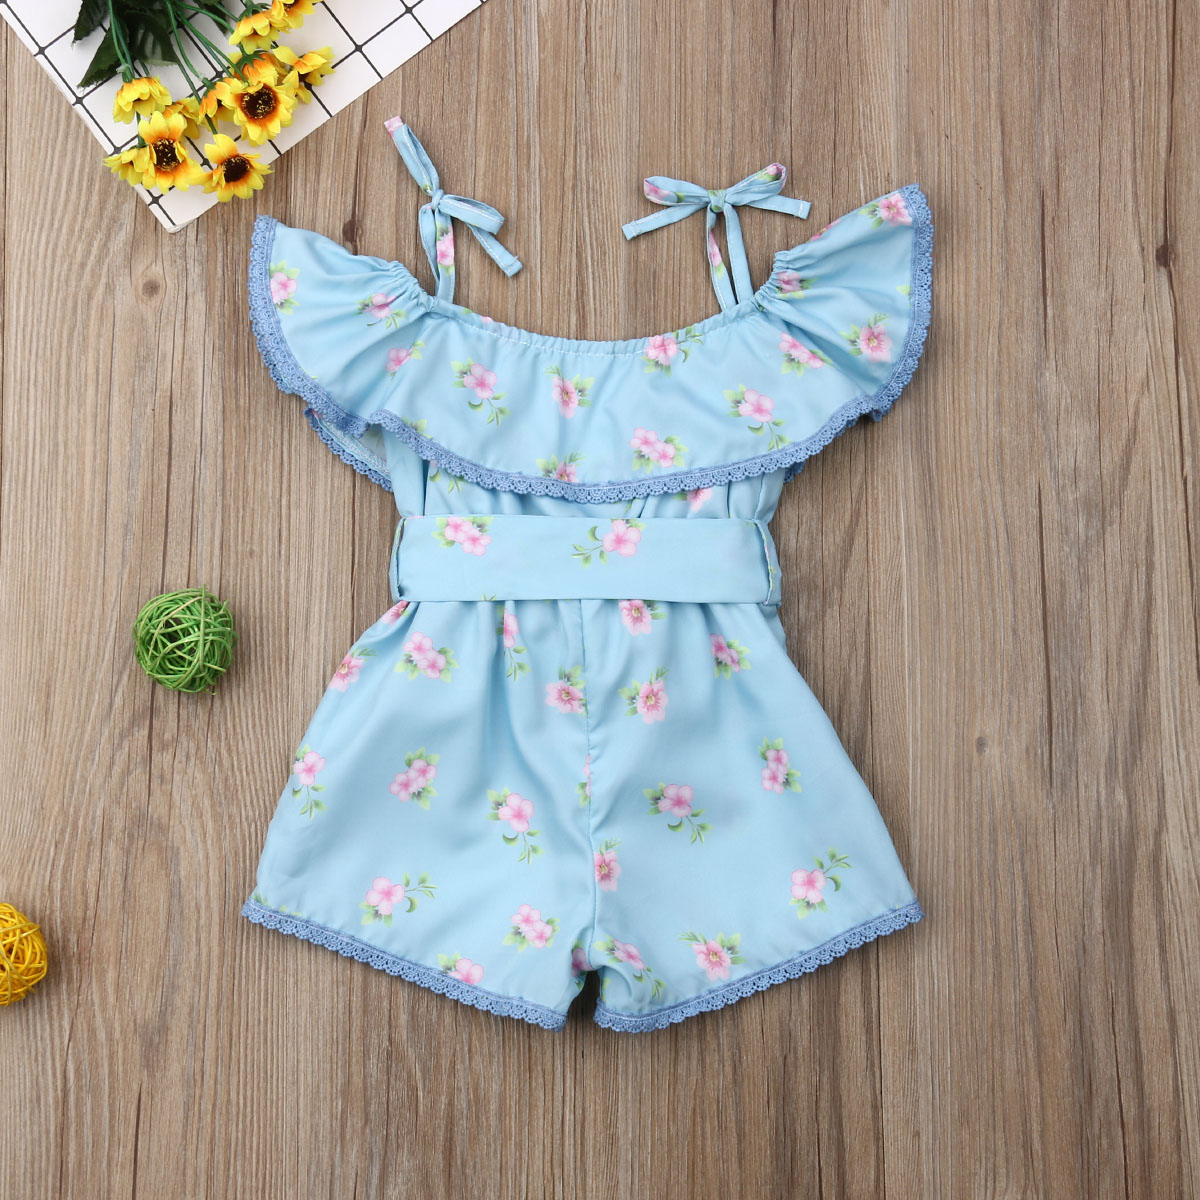 Toddler Kids Baby Girl Floral Off Shoulder Romper Butterfly Collar Jumpsuit Playsuit Clothes Overalls for Children in Clothing Sets from Mother Kids